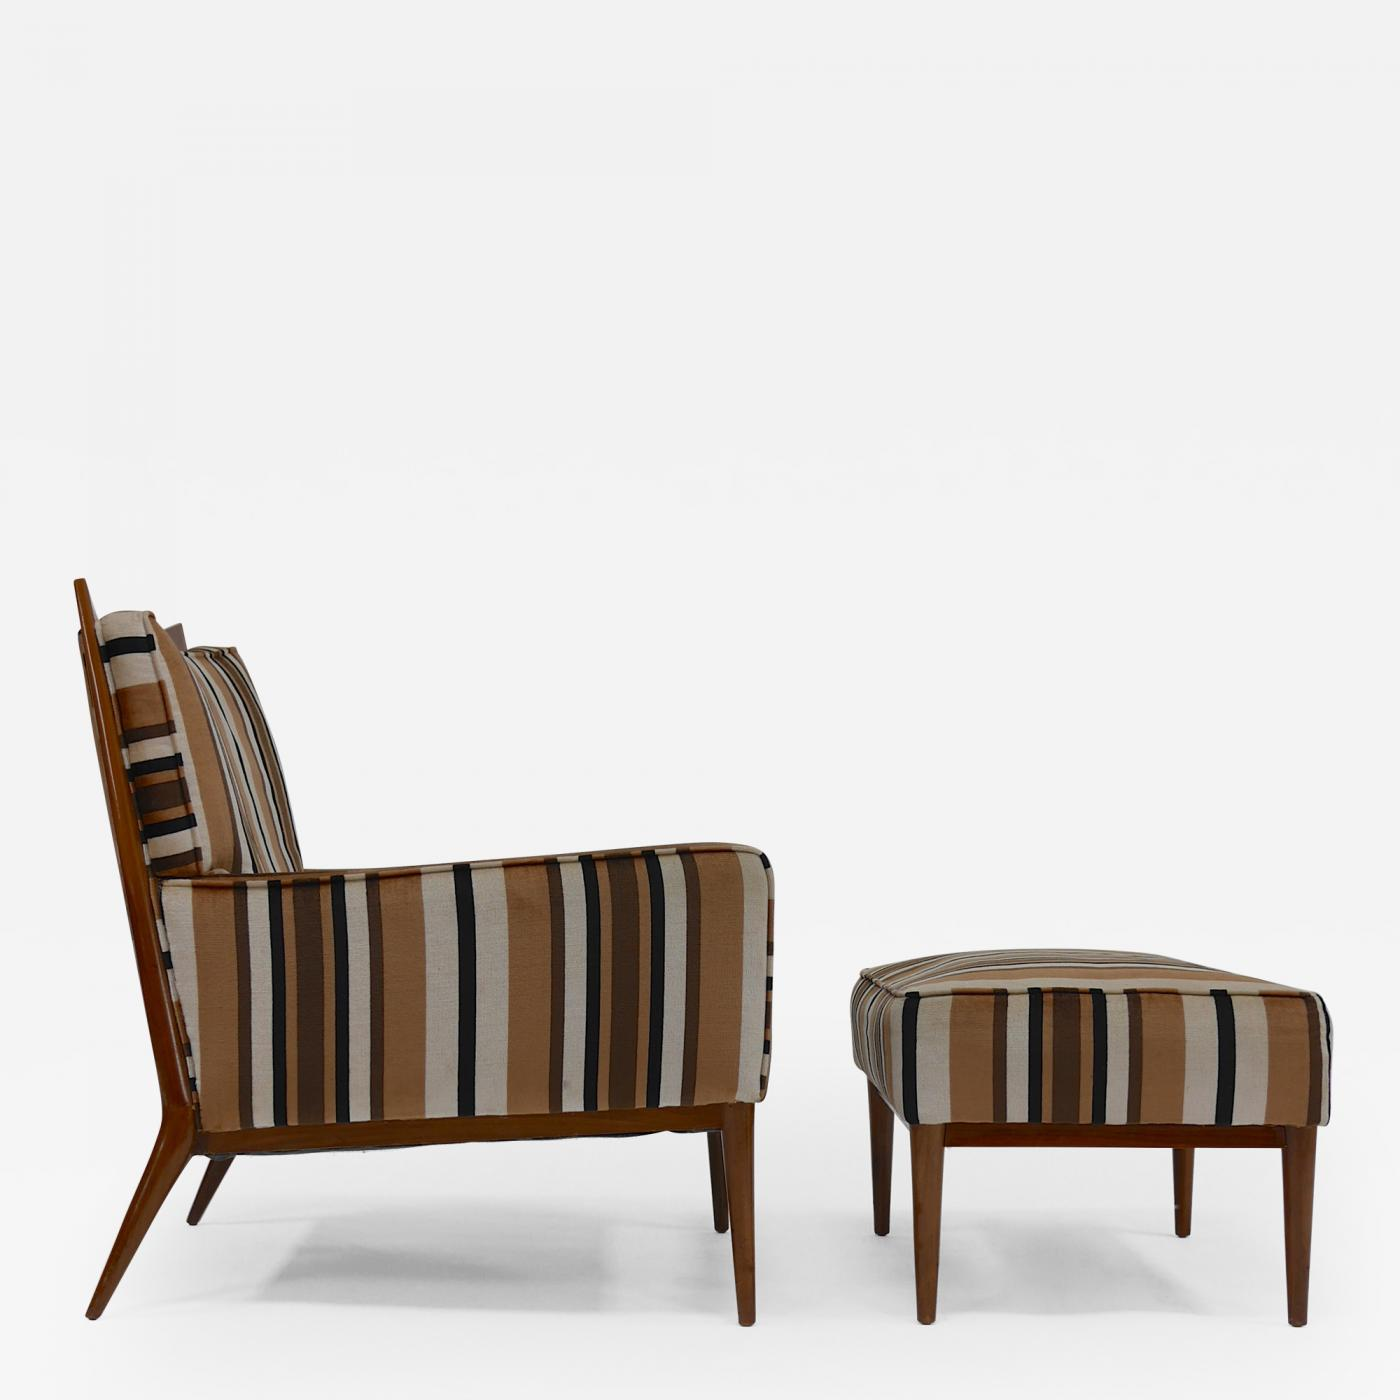 Paul McCobb Lounge Chair and Ottoman by Paul McCobb for Directional